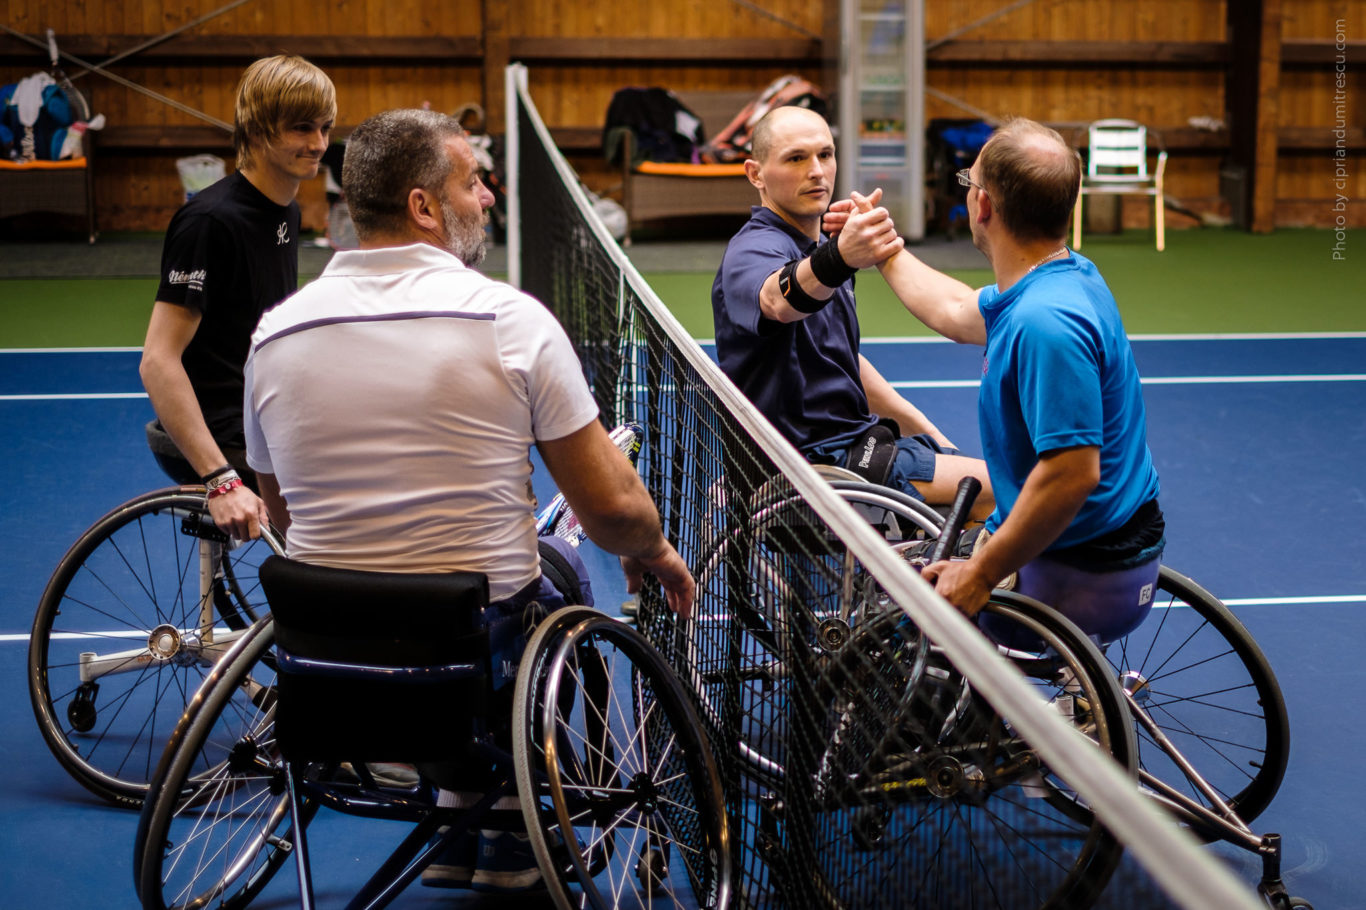 016-Bucharest-Open-Wheelchair-2016-Day-One-Photographer-Ciprian-Dumitrescu